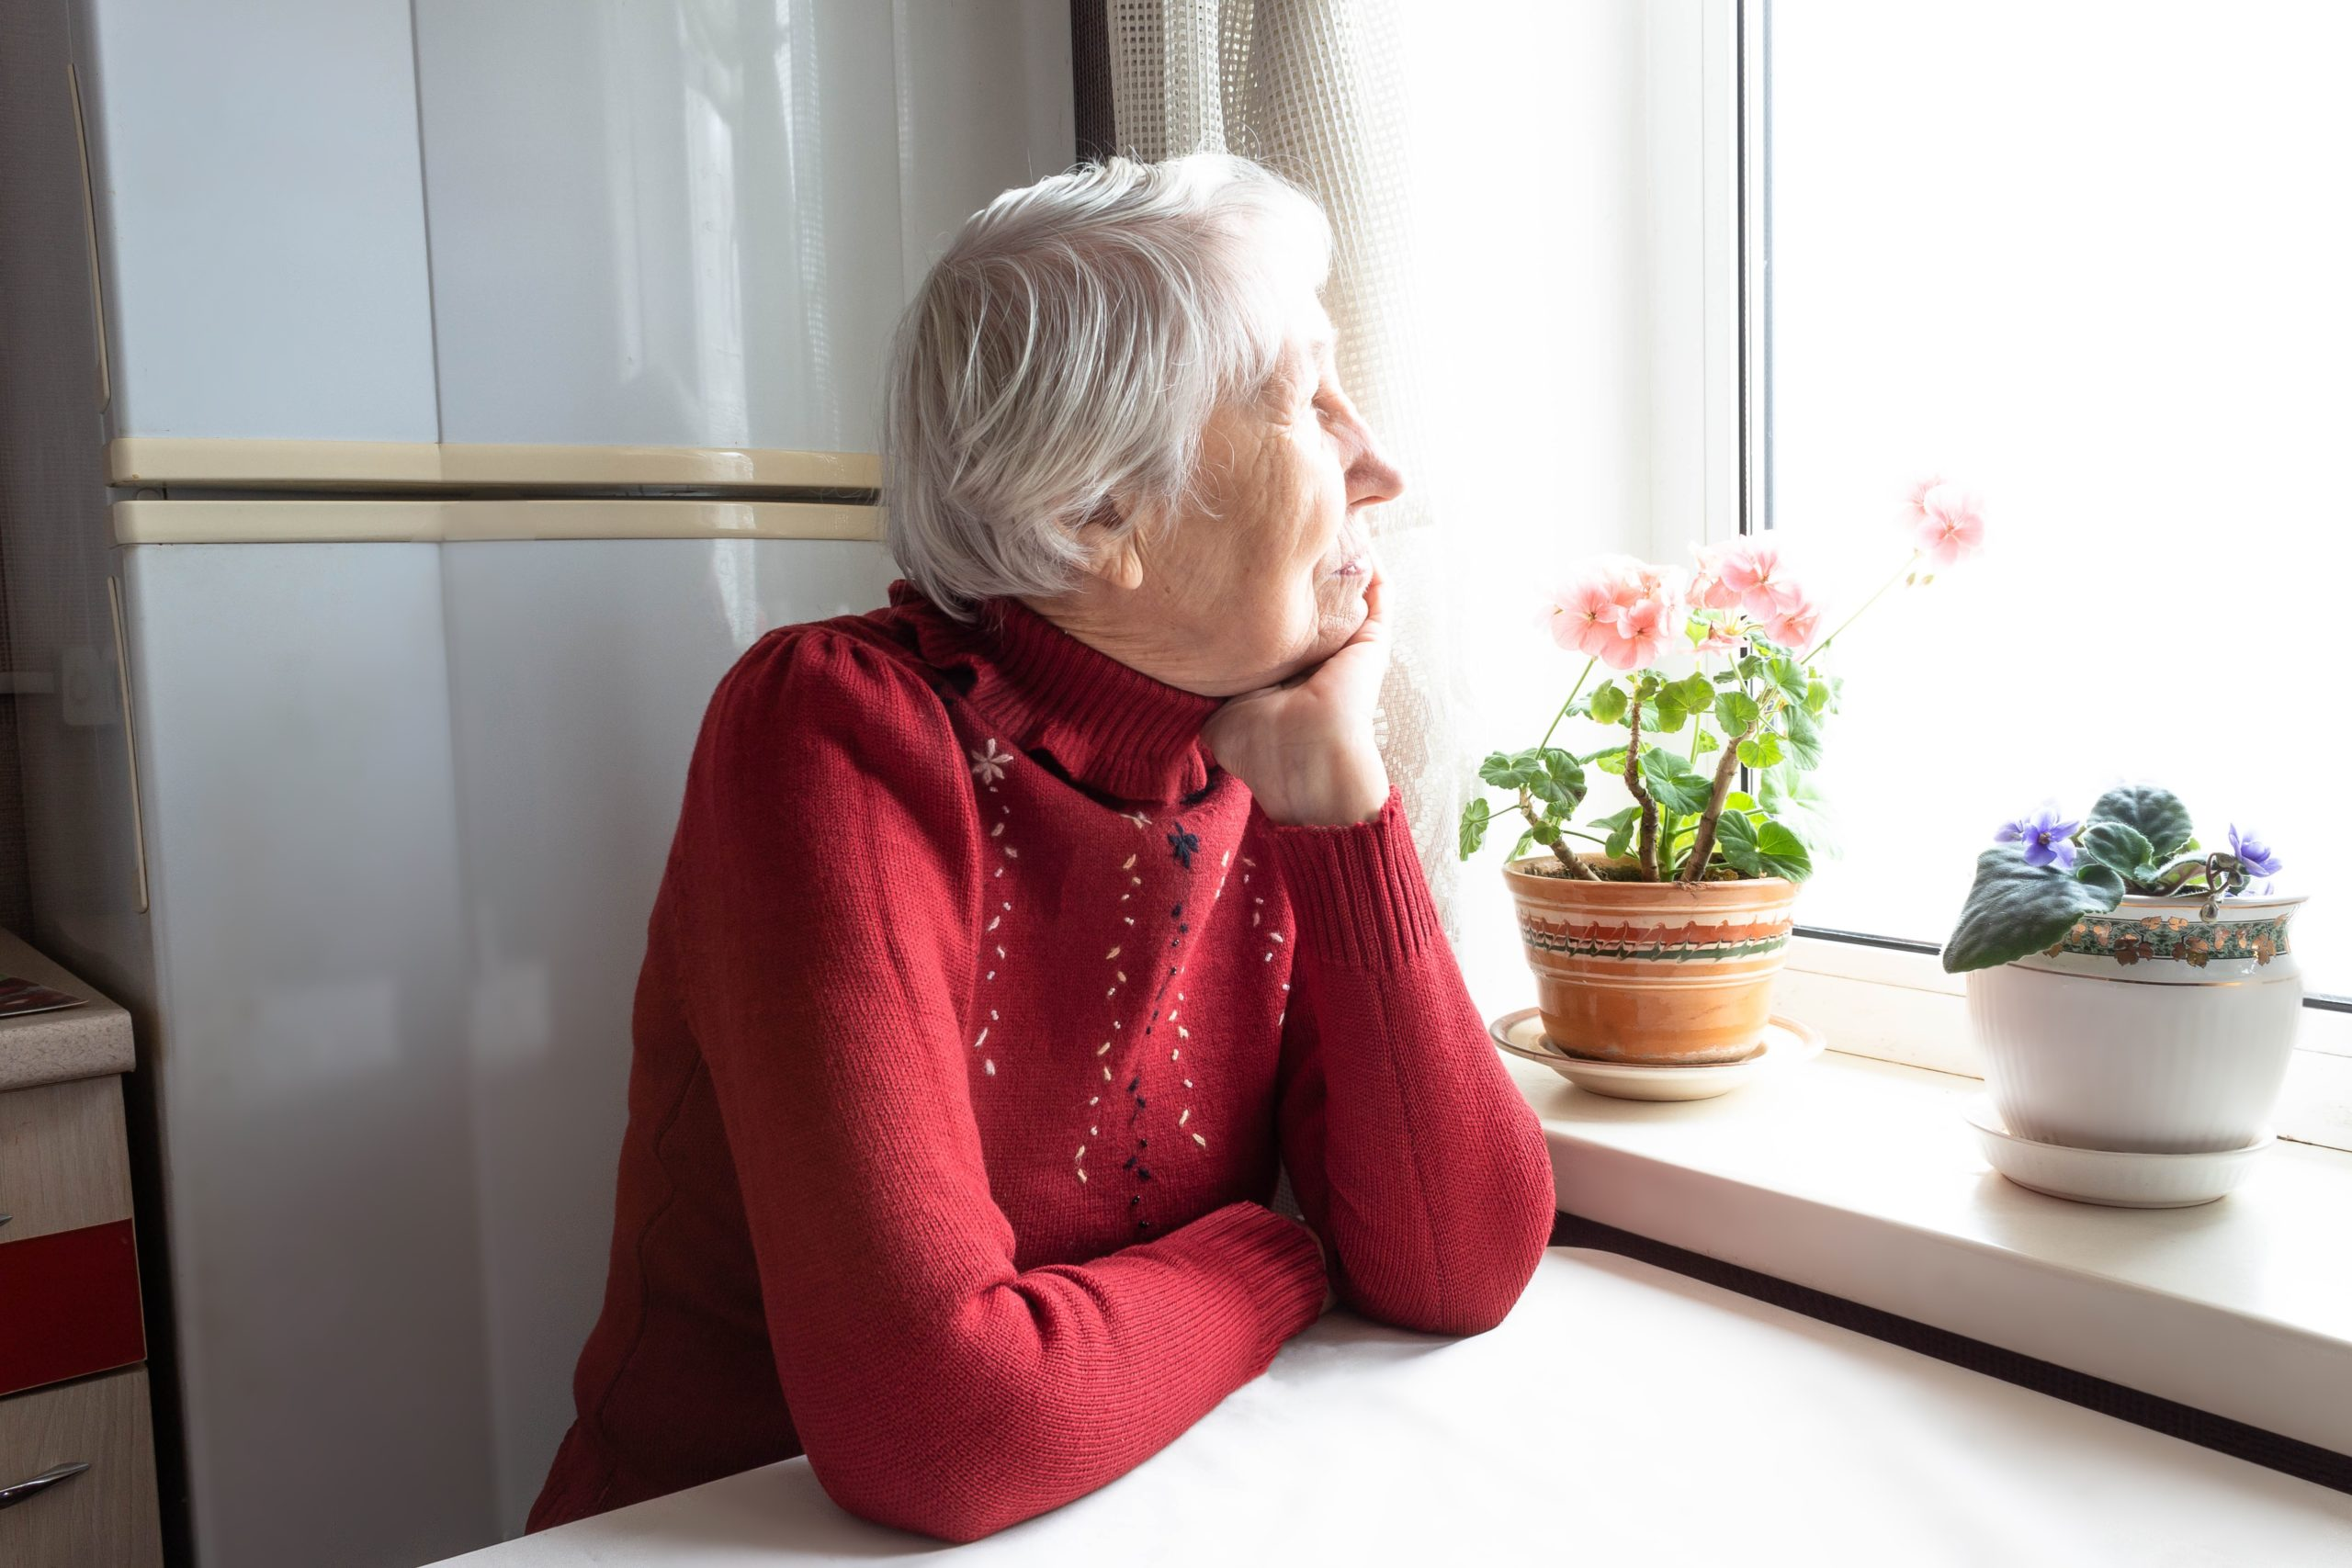 Artificial Intelligence Used To Predict Loneliness In Senior Citizens